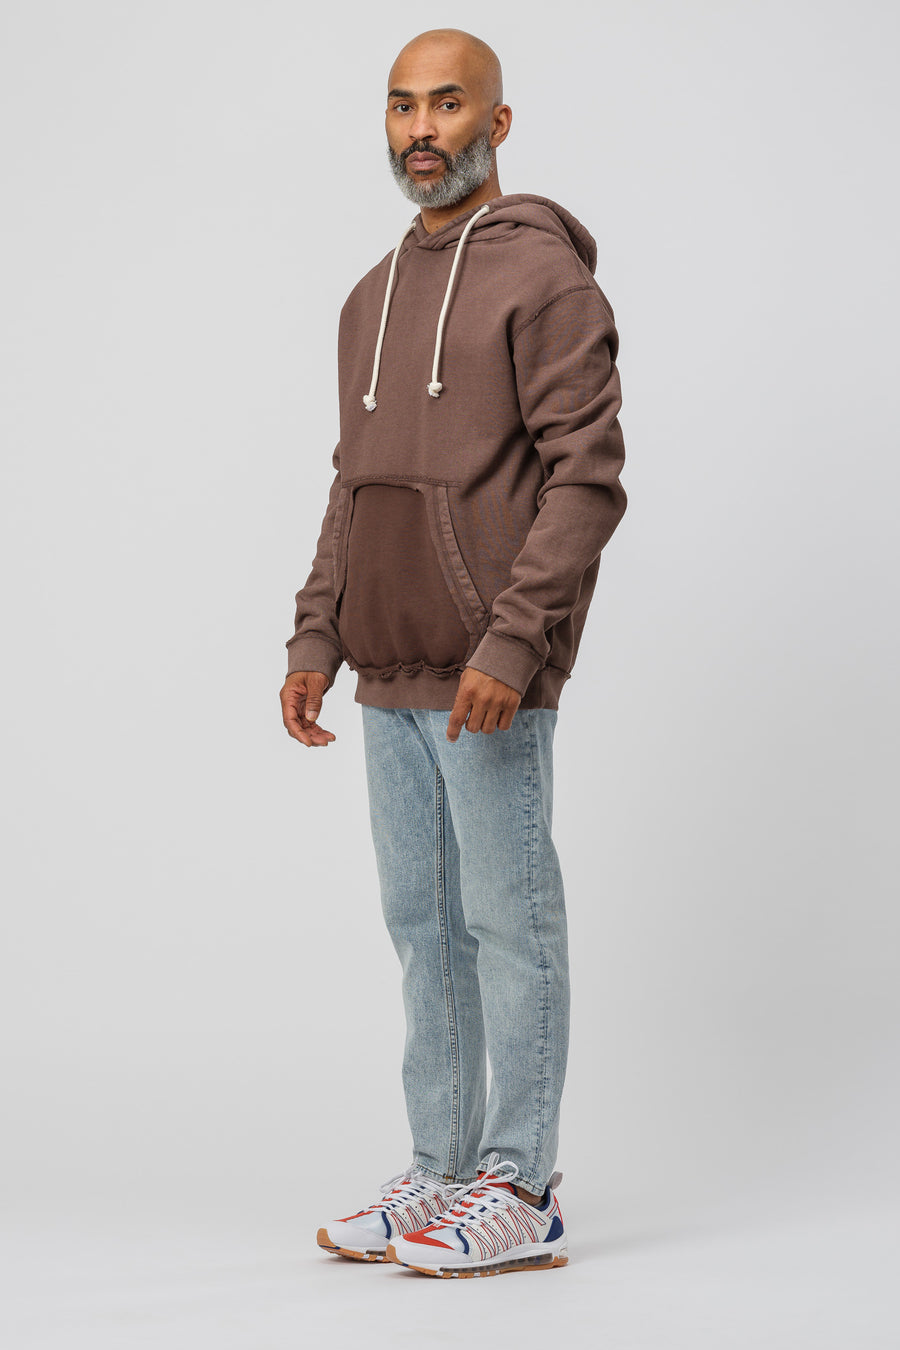 Maison Margiela Hooded Sweatshirt in Brown - Notre